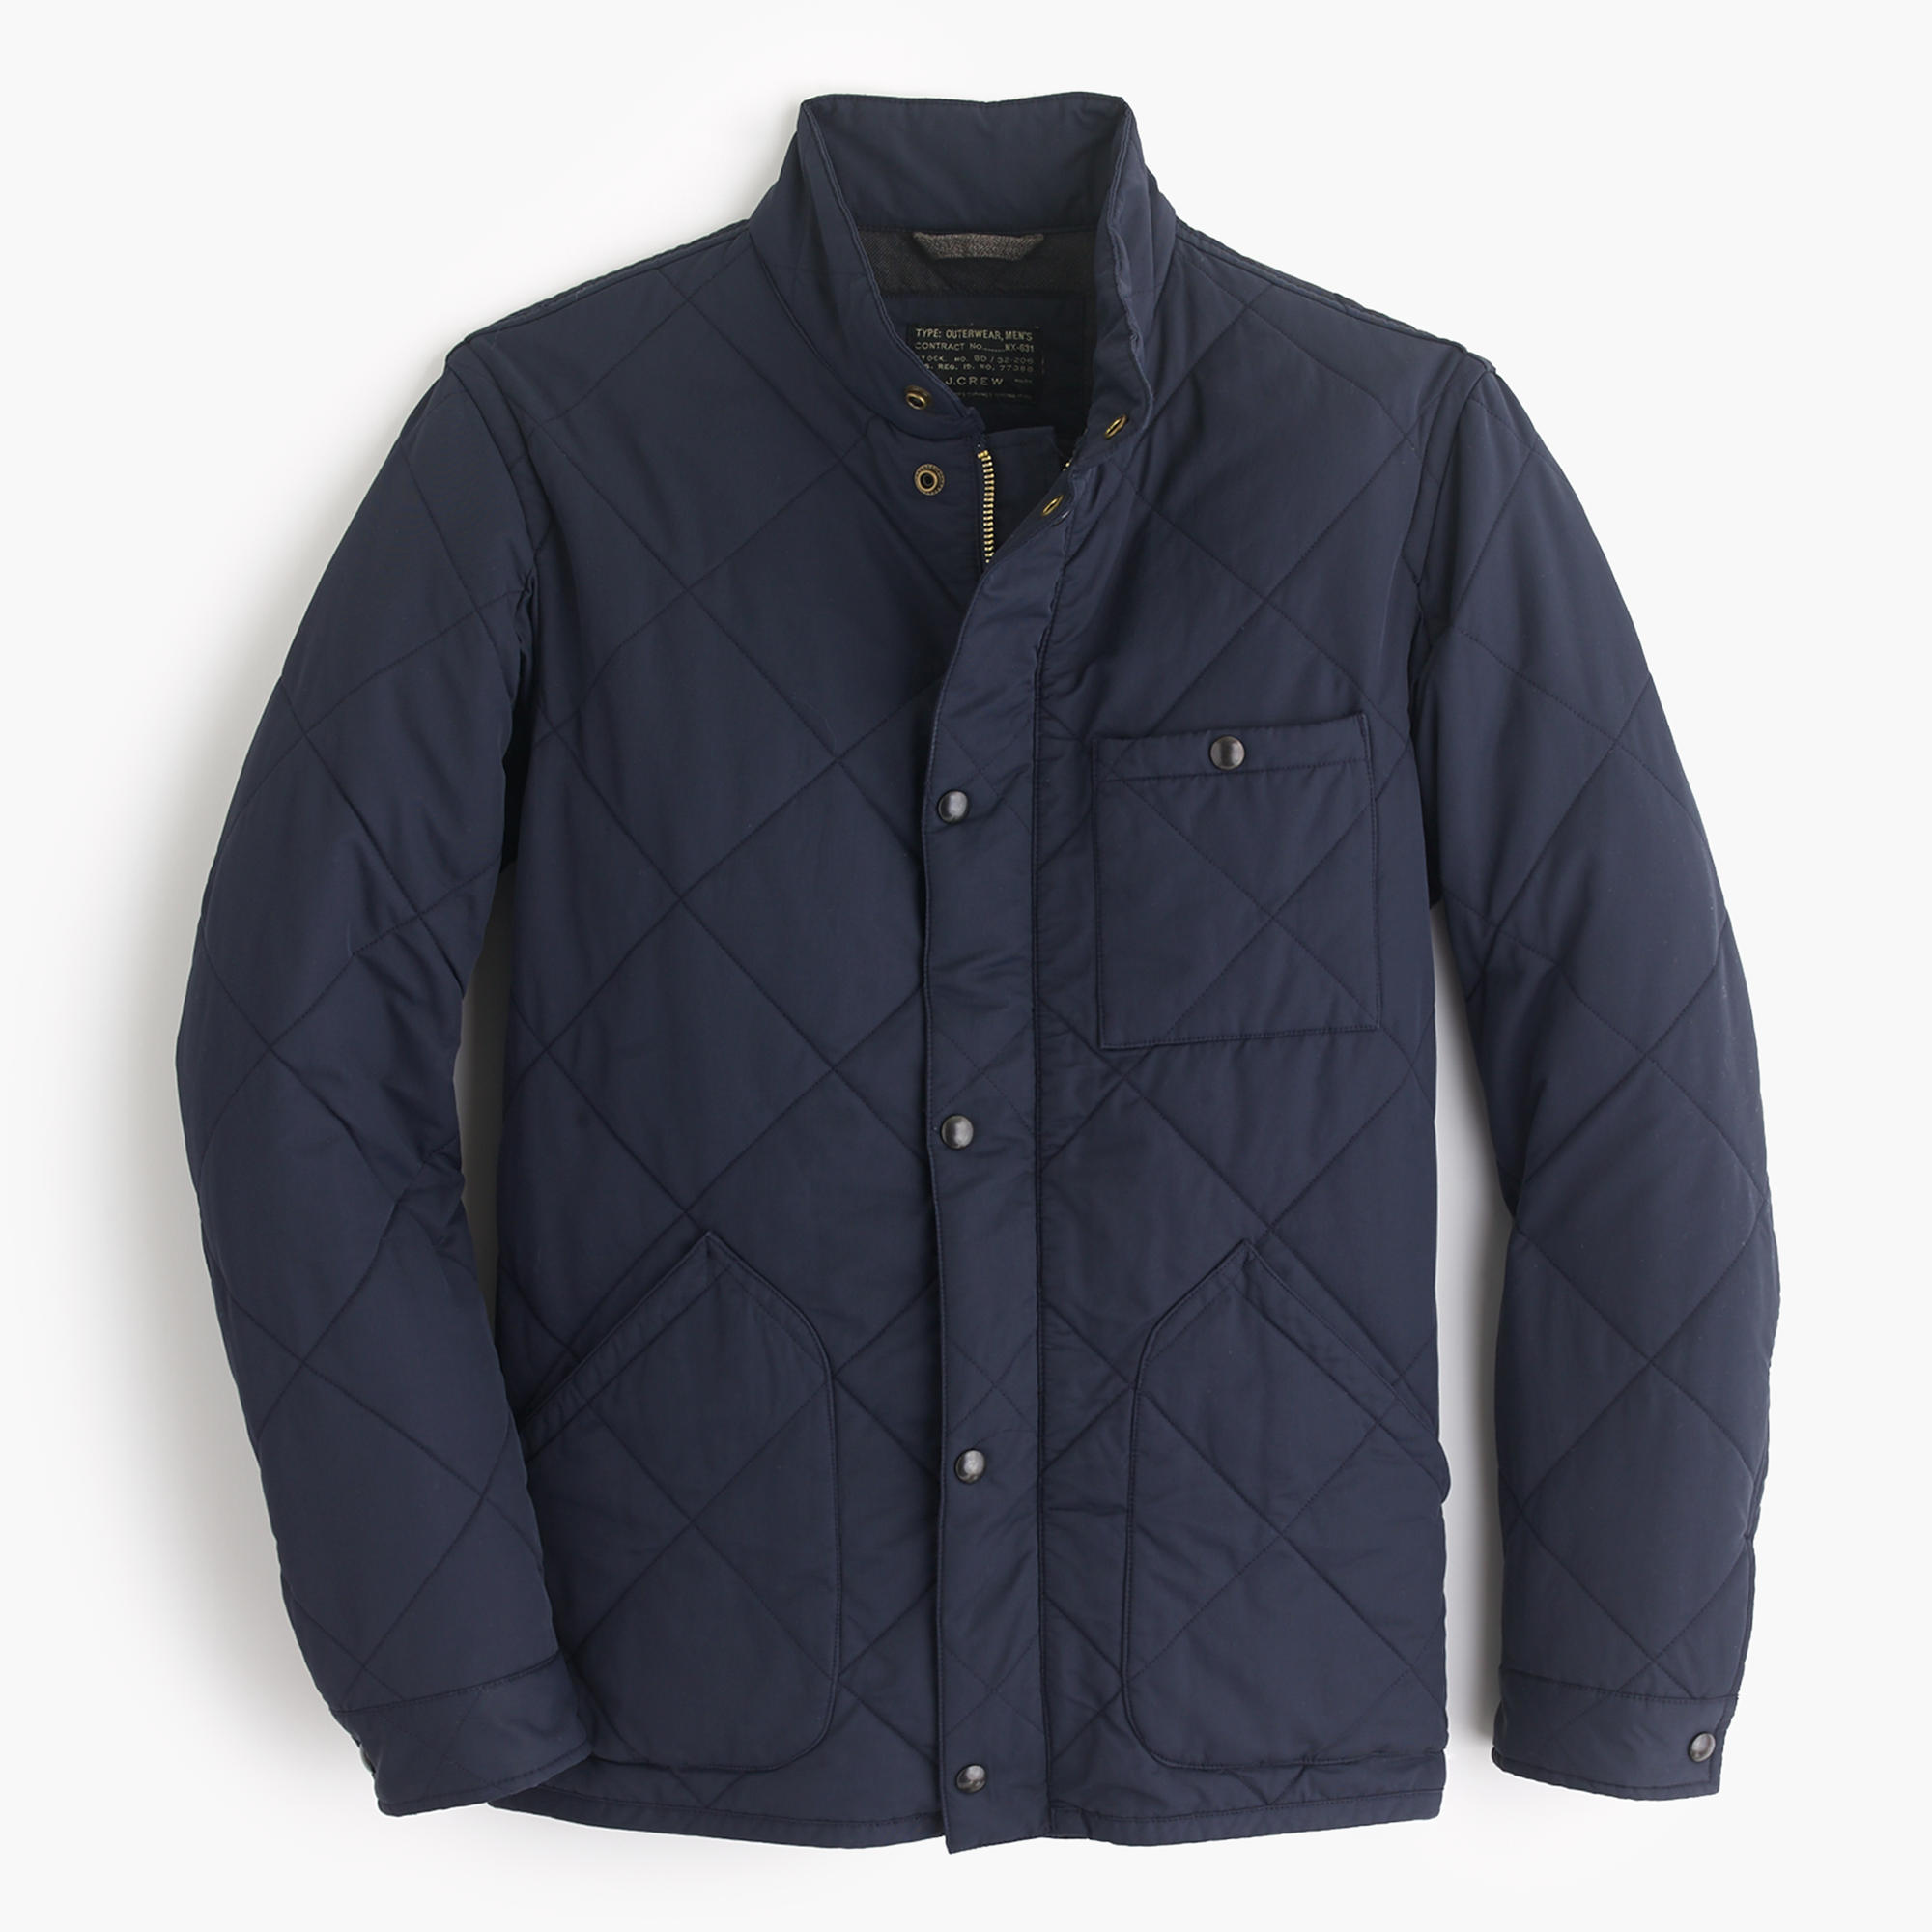 Mens quilted jacket sale uk -  Sussex Quilted Jacket Sussex Quilted Jacket